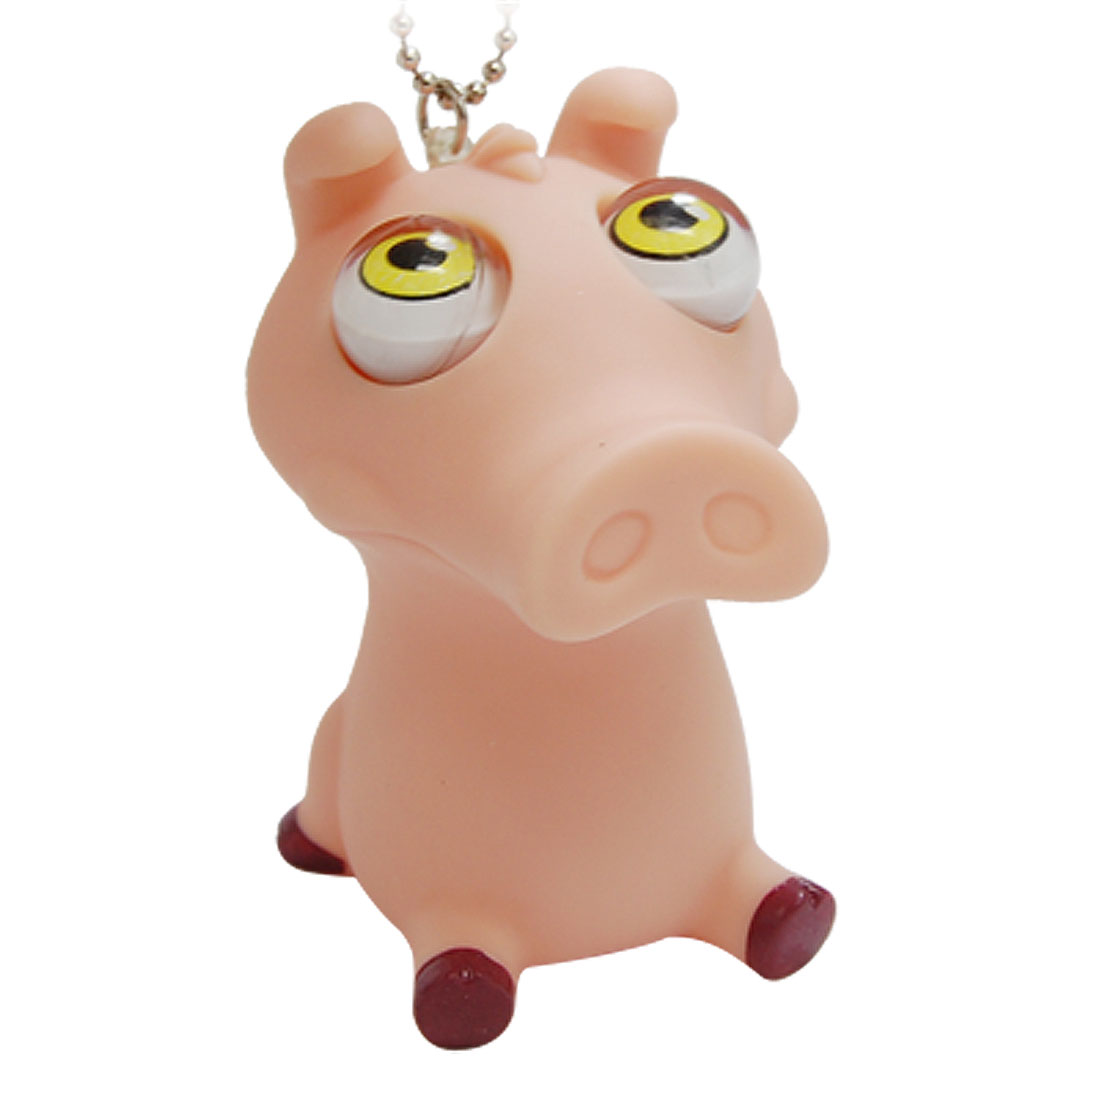 Lovable Pig Shaped Squeeze Toy Stress Relief Gag Gift